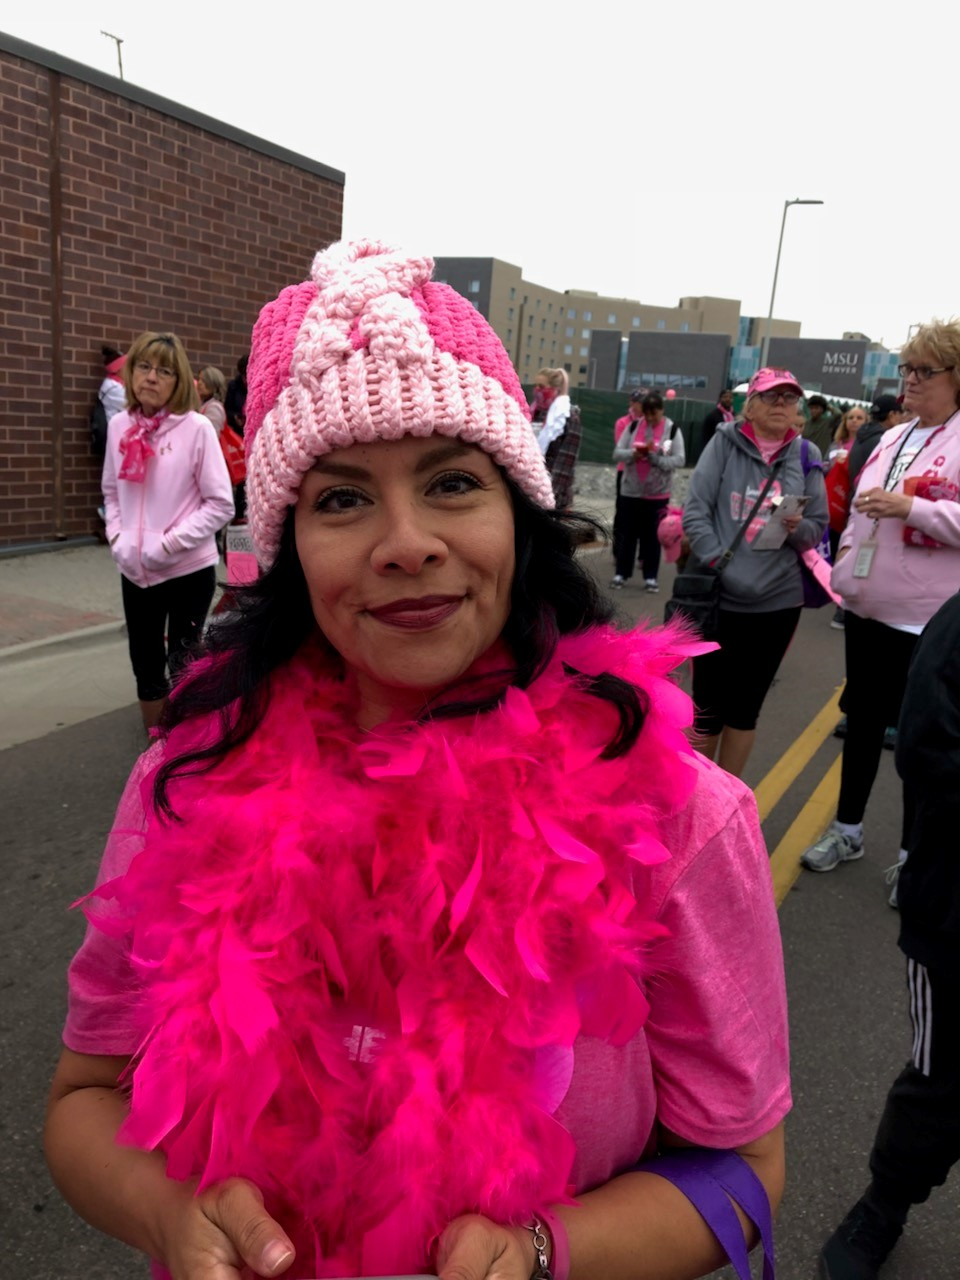 Sweaty person wearing pink Breast Cancer awareness beanie and pink feather boa.